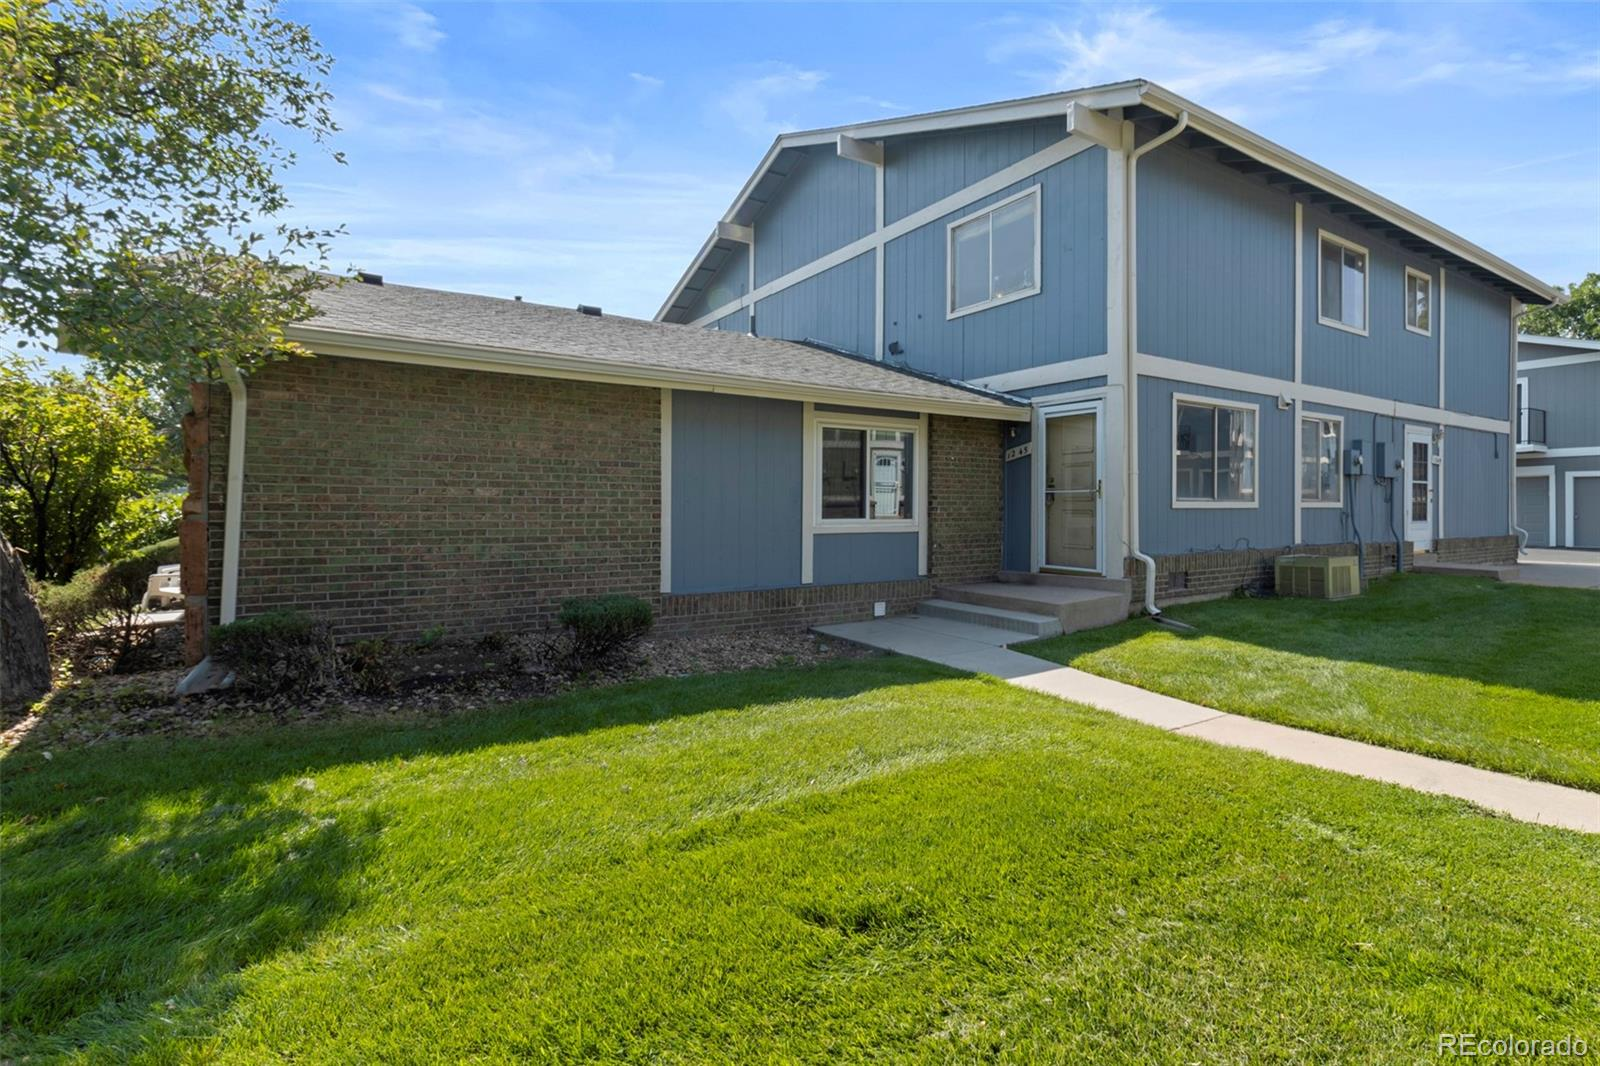 Awesome investment opportunity! This two-story townhome, with no one above or below you, located right in the heart of Aurora, features an open floor plan, spacious walk-in closet, and tons of beautifully landscaped open space right outside the front door. Close to shopping, dining, I-225, light rail, bus line, Anschutz Medical Campus, Medical Center of Aurora, and Cherry Creek State Park. Can't beat this location - come check it out!